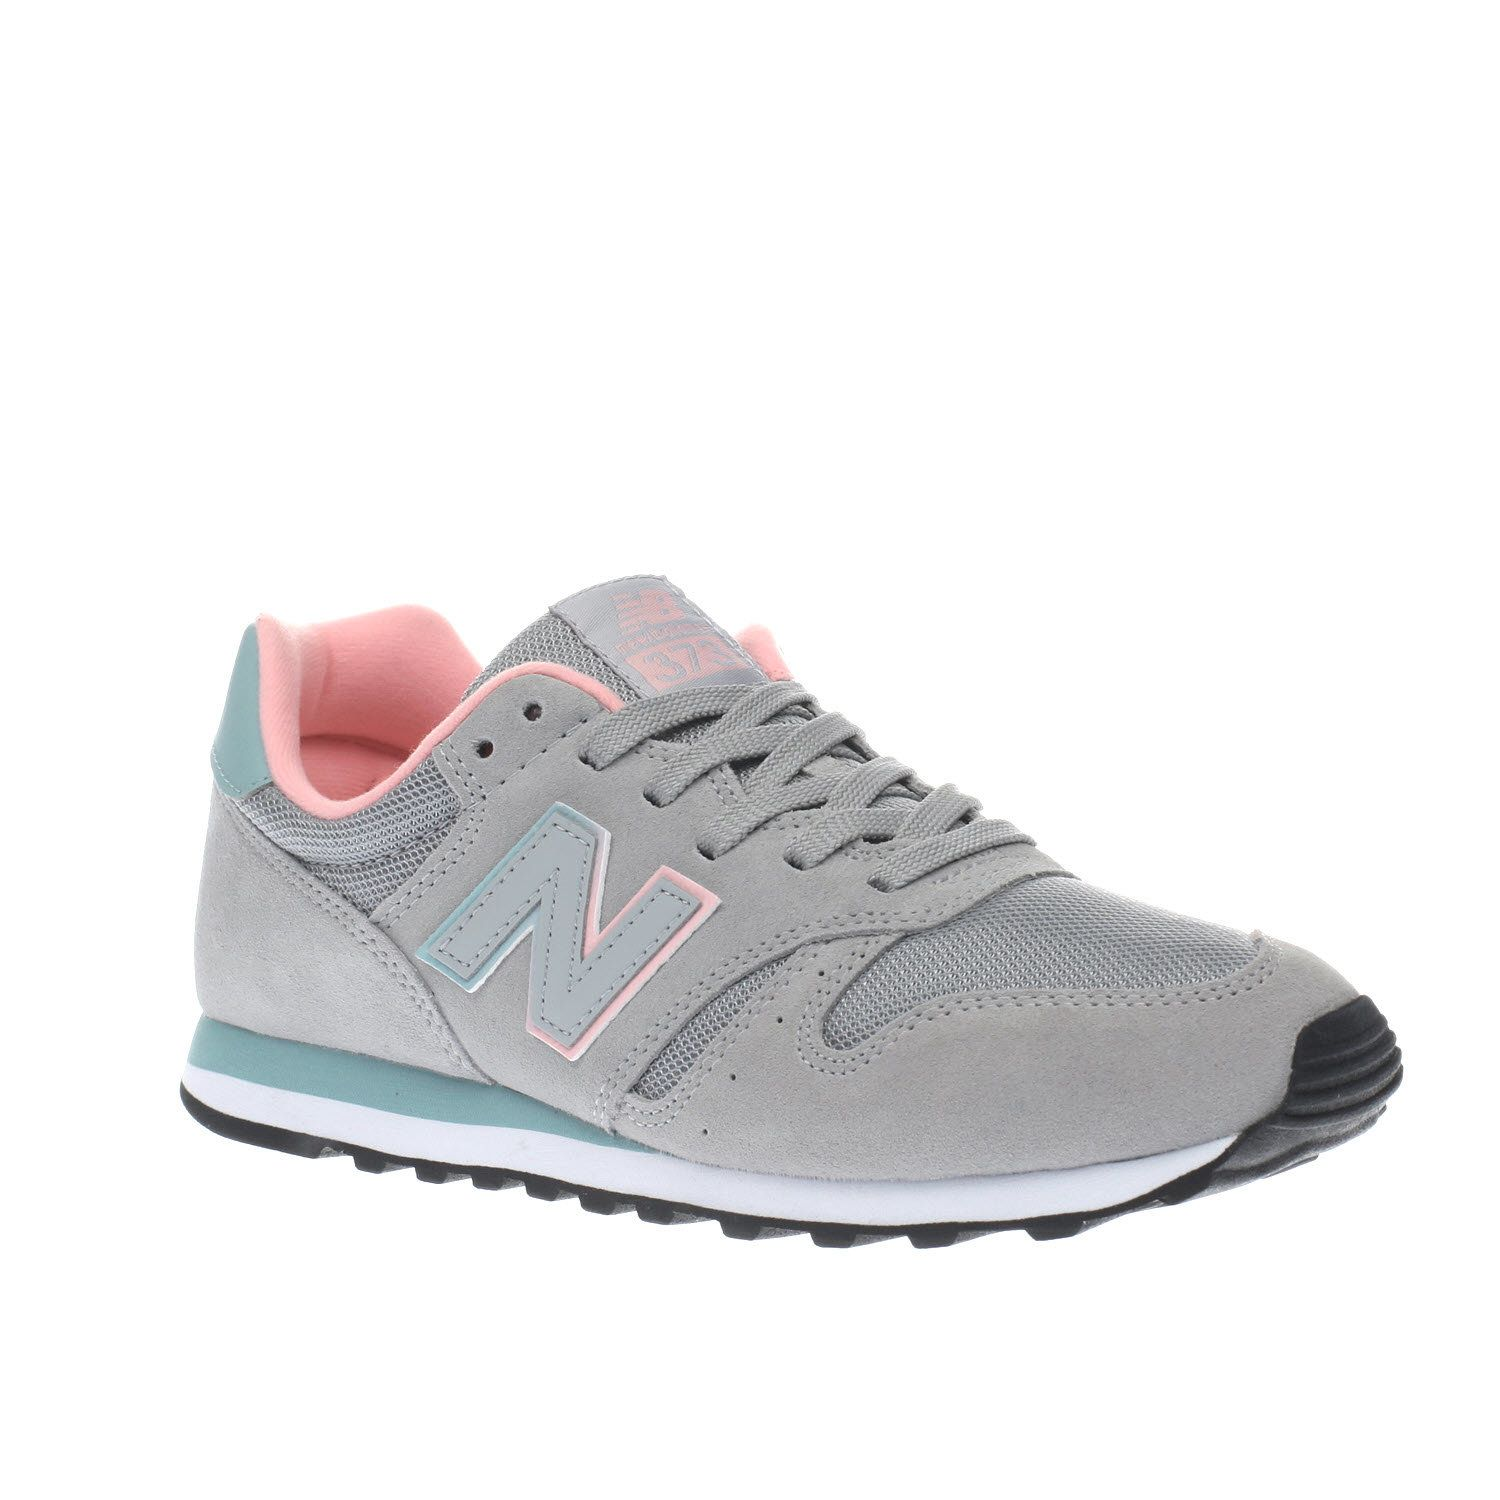 new balance light grey pink